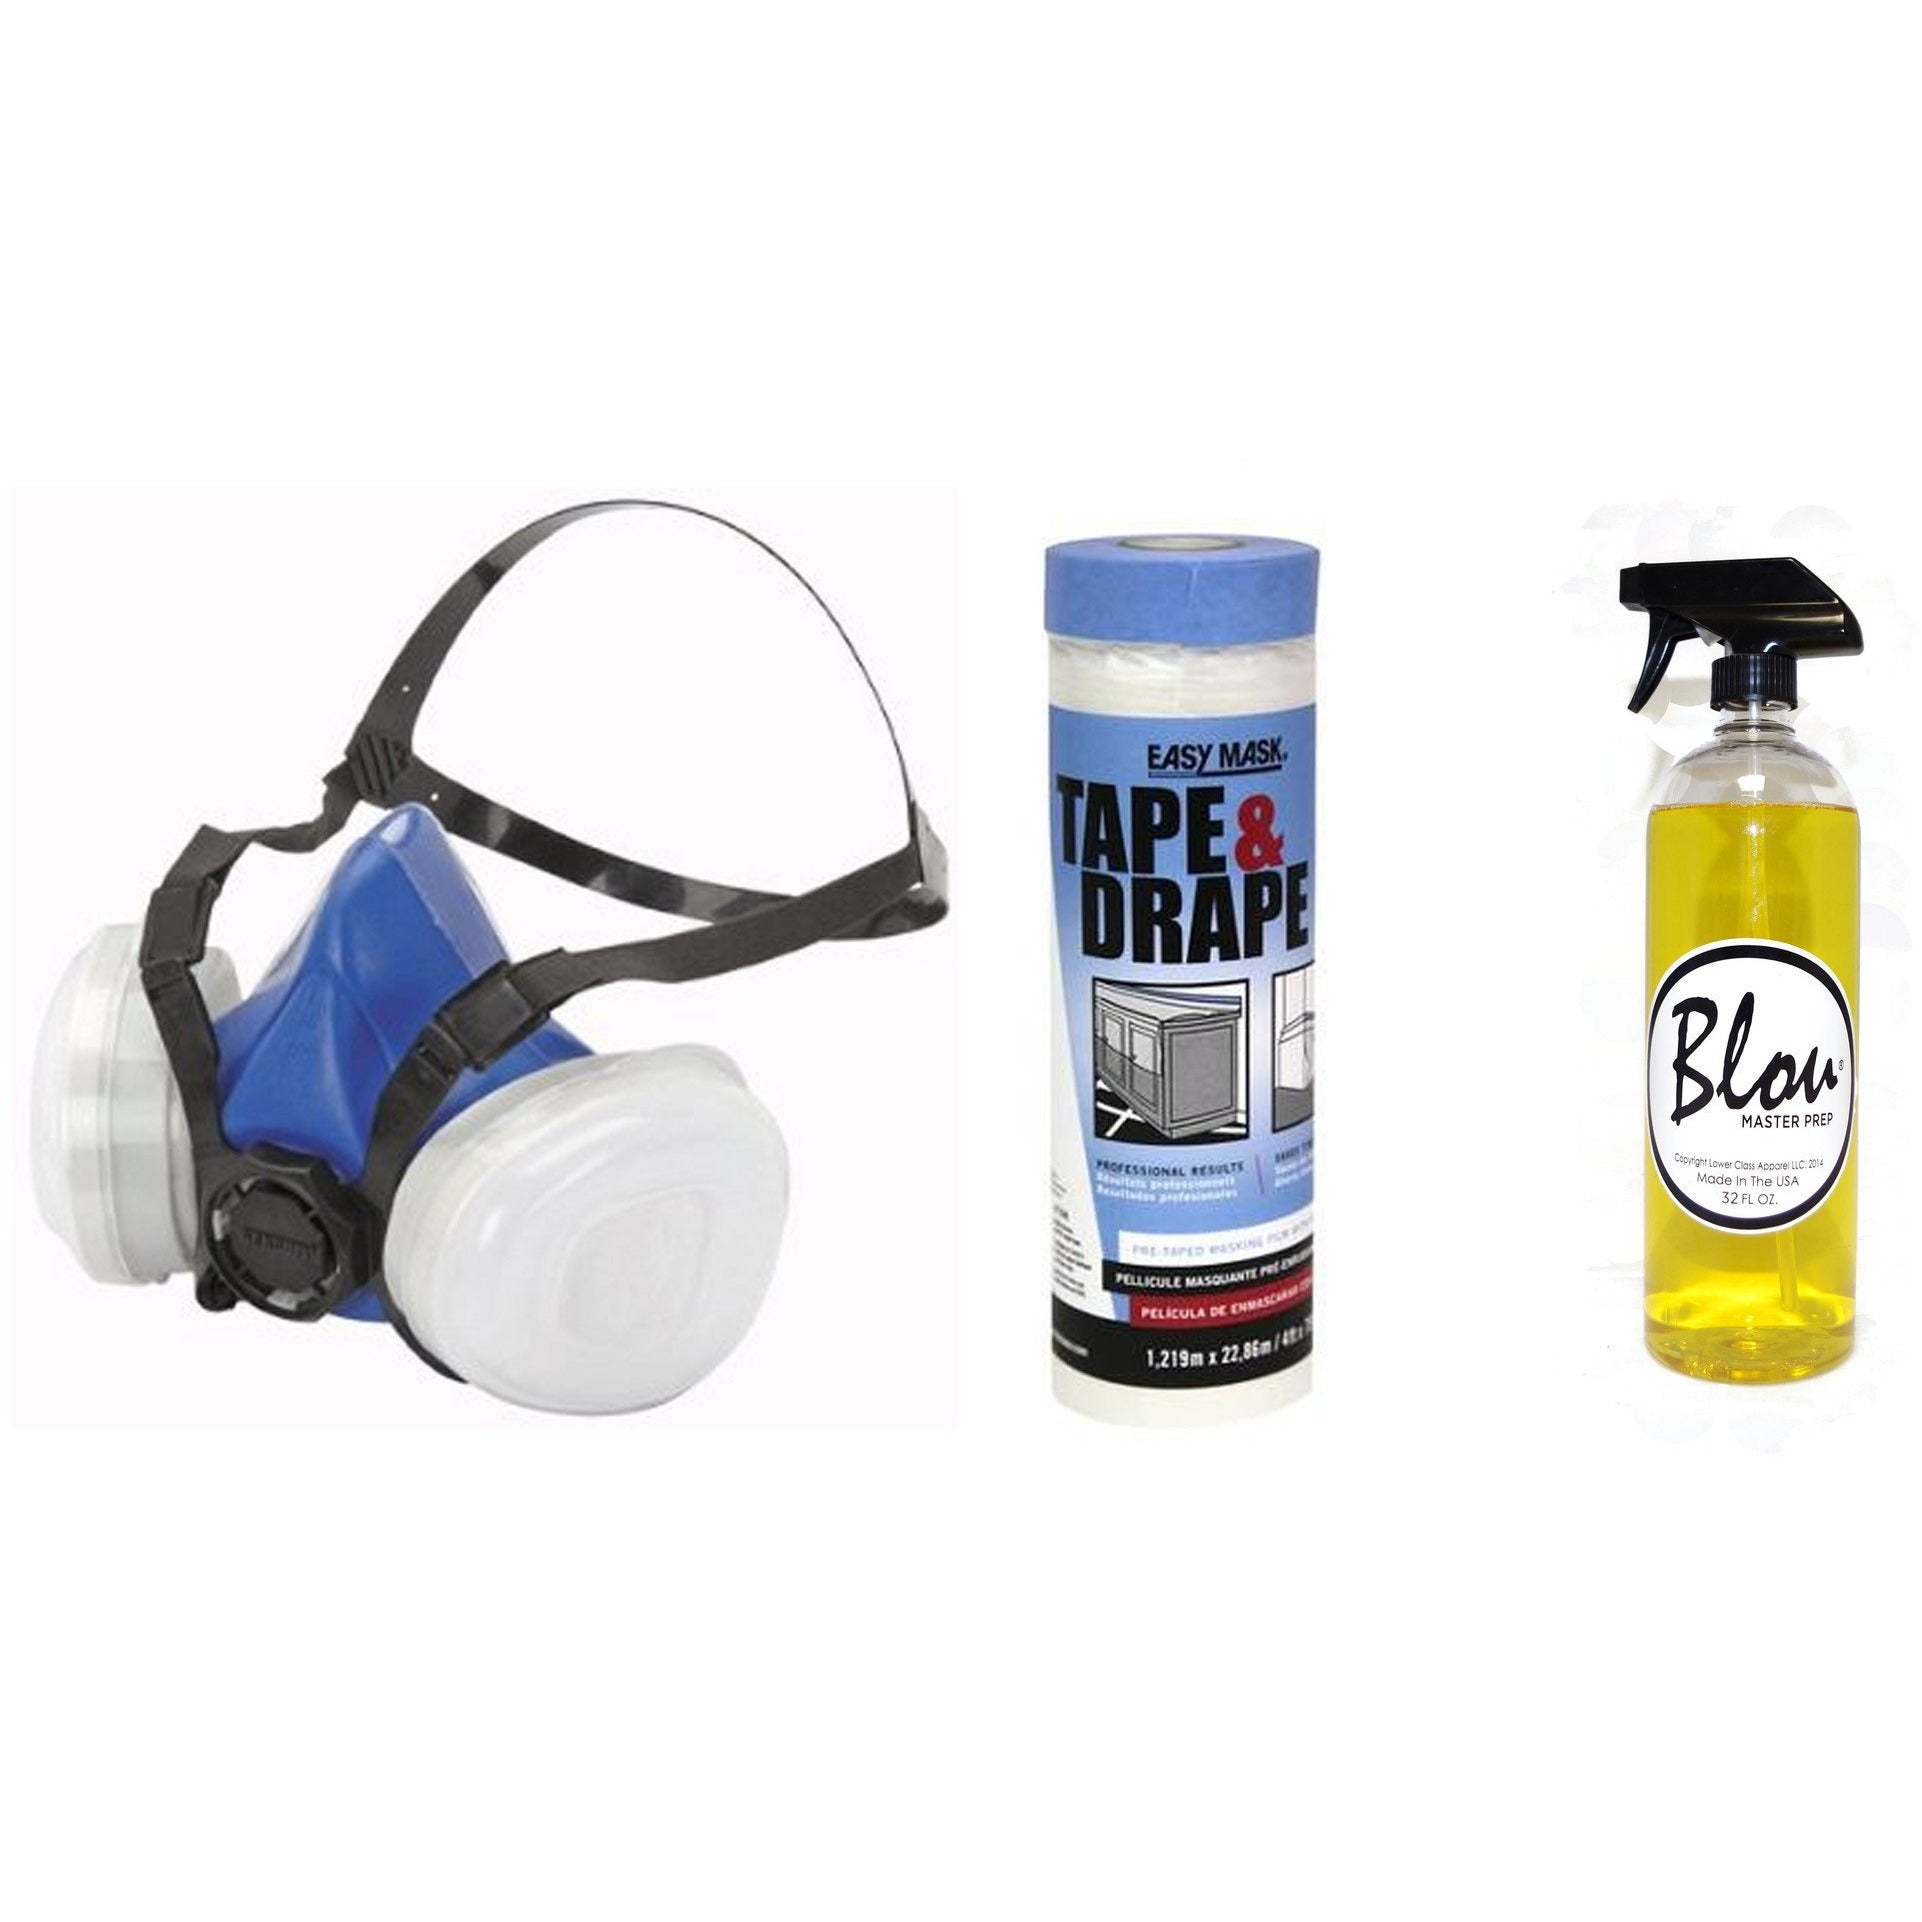 Load image into Gallery viewer, Premium Kit (Gerson Respirator, Tape & Drape, Master Prep 32oz)